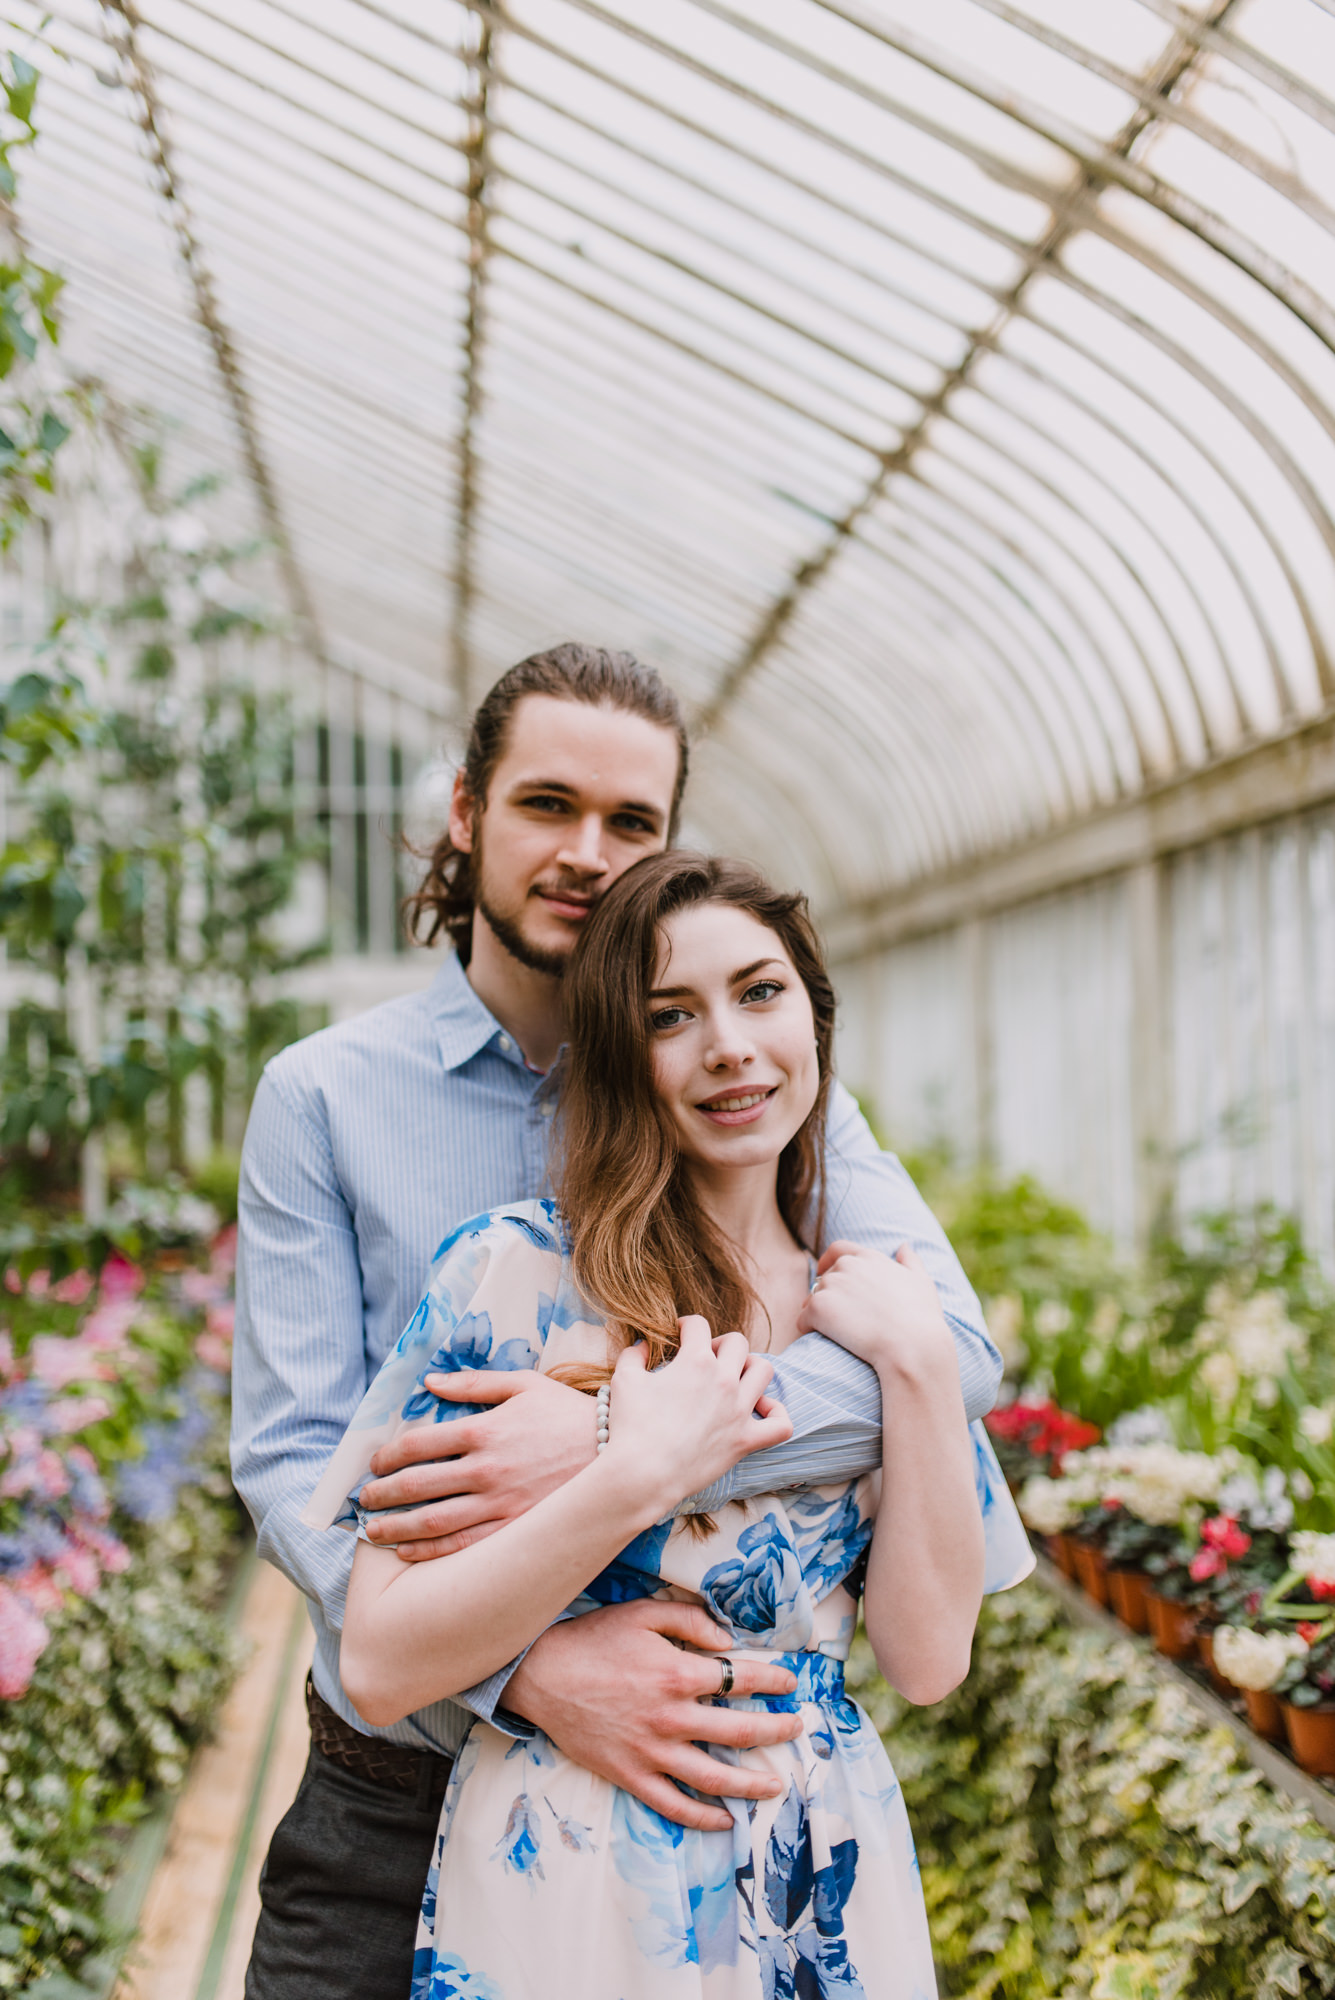 engagement photos belfast botanic garden25.jpg